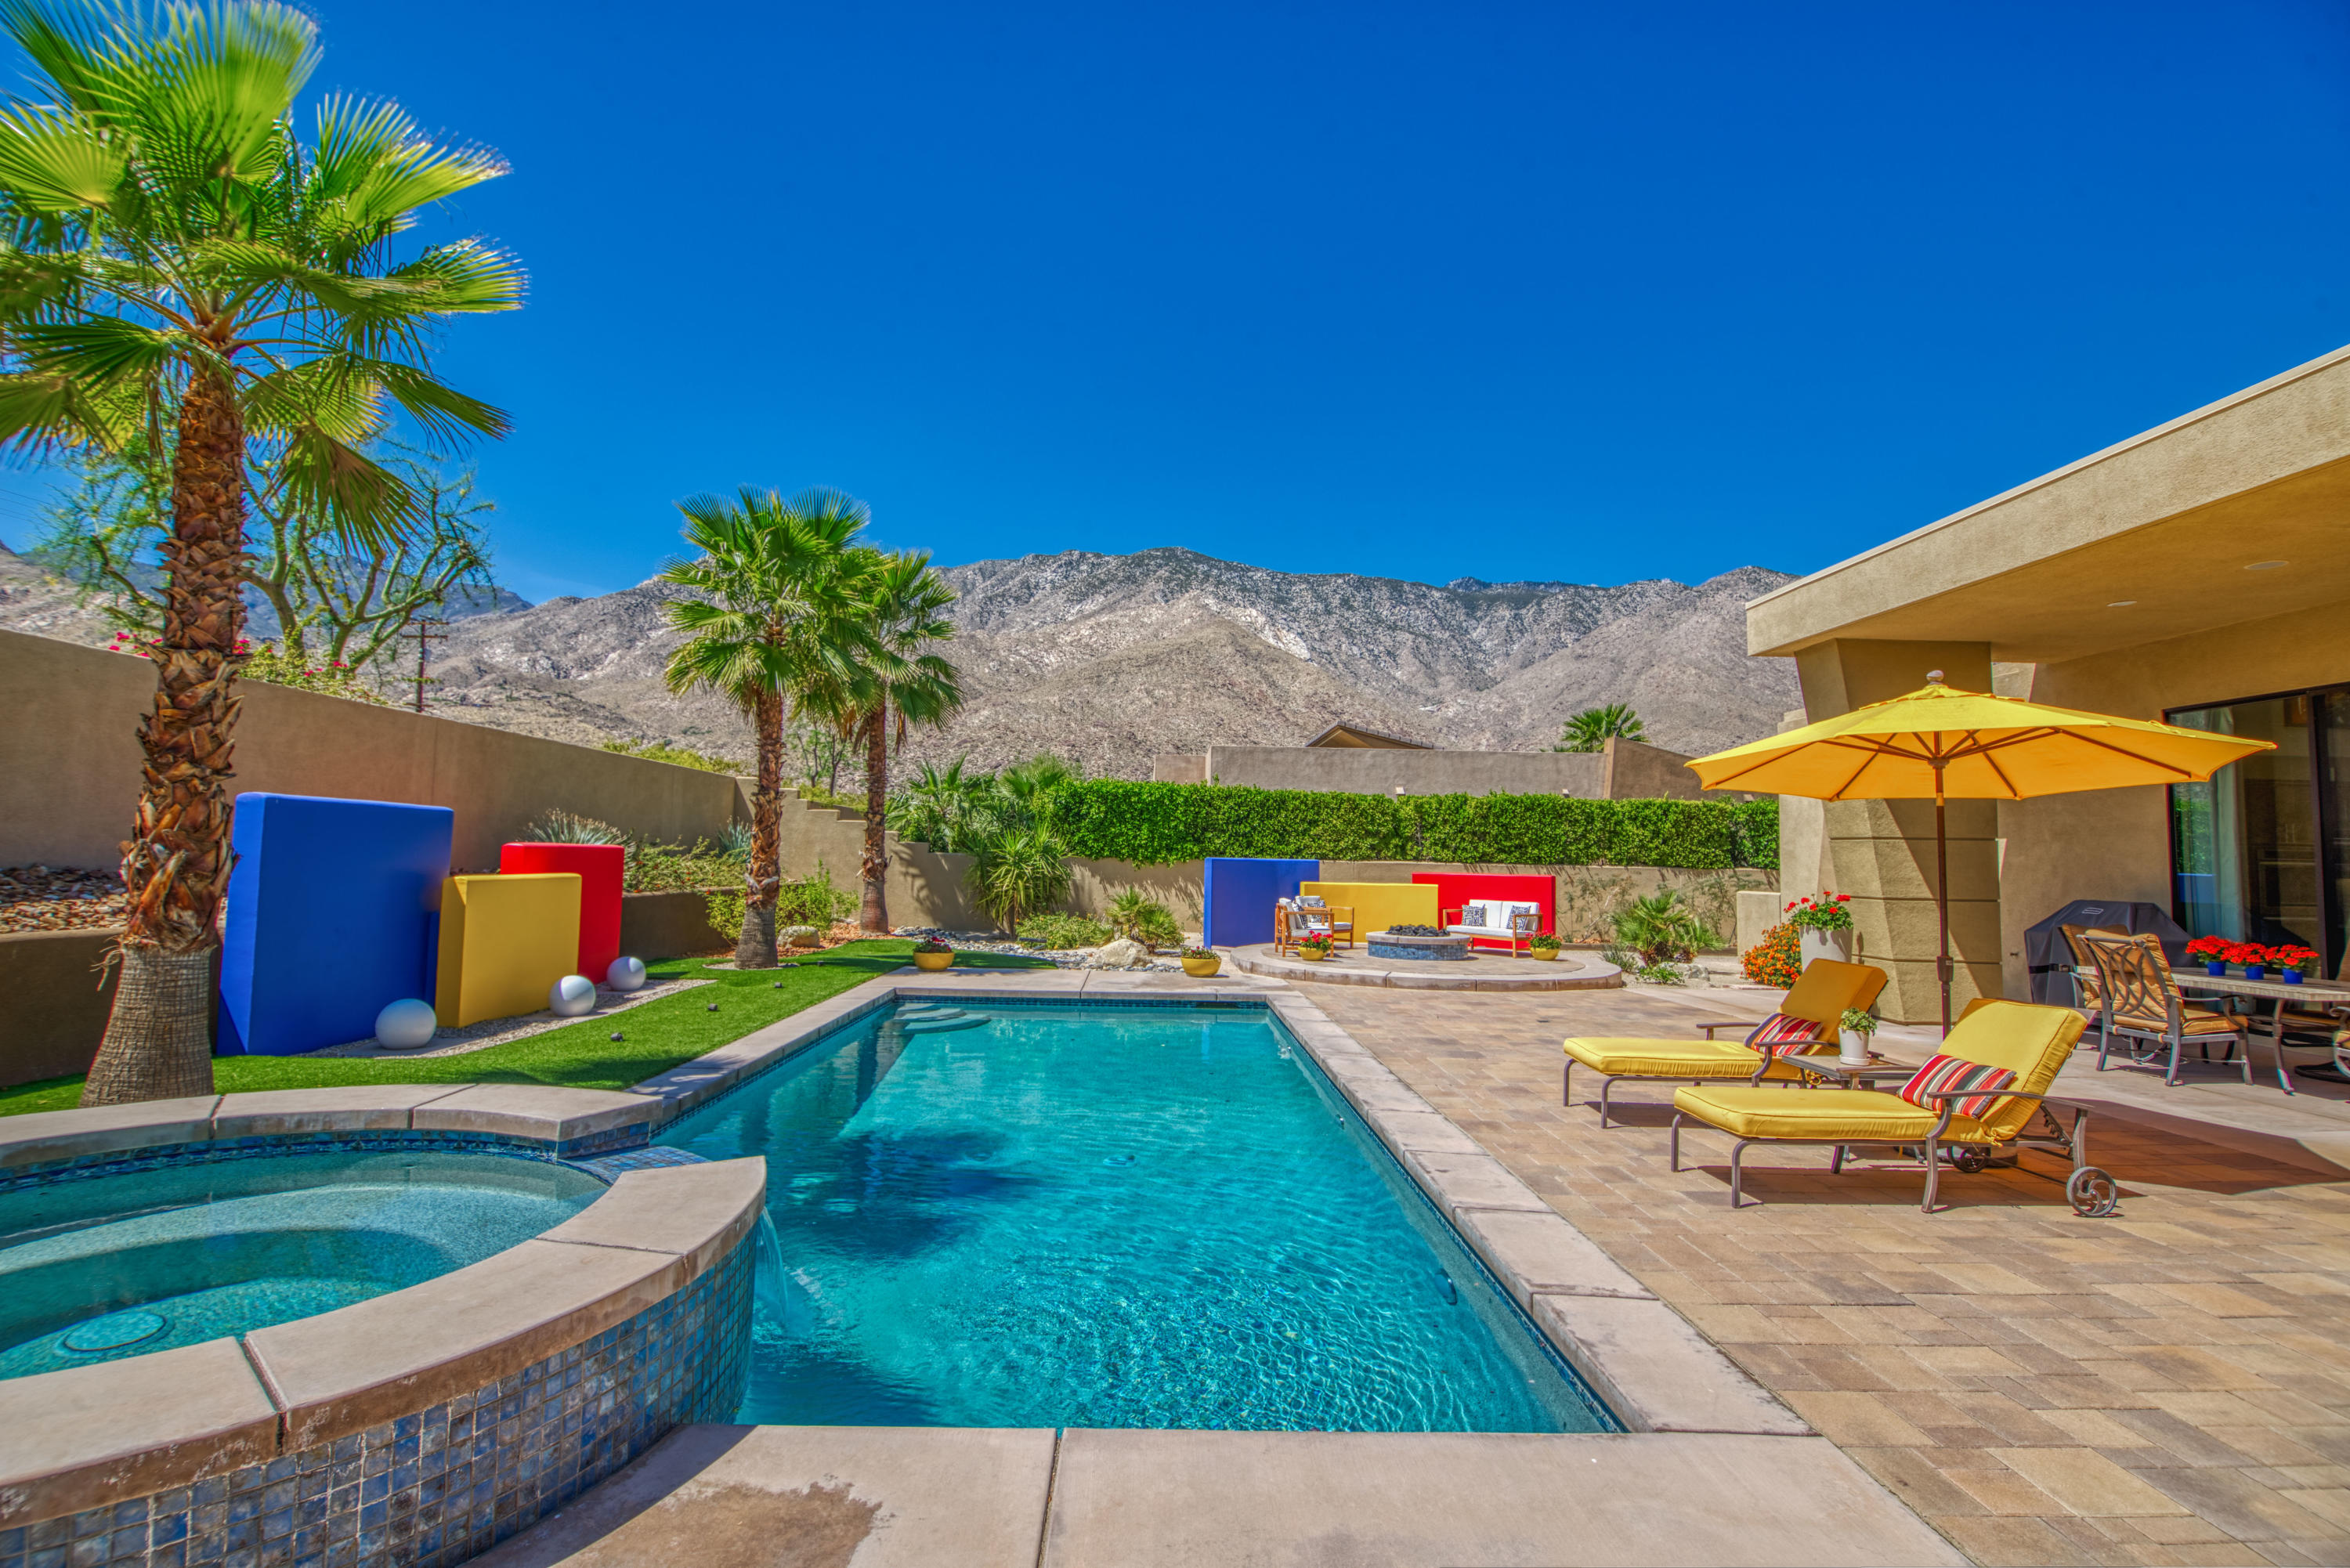 Photo of 397 Neutra Street, Palm Springs, CA 92264